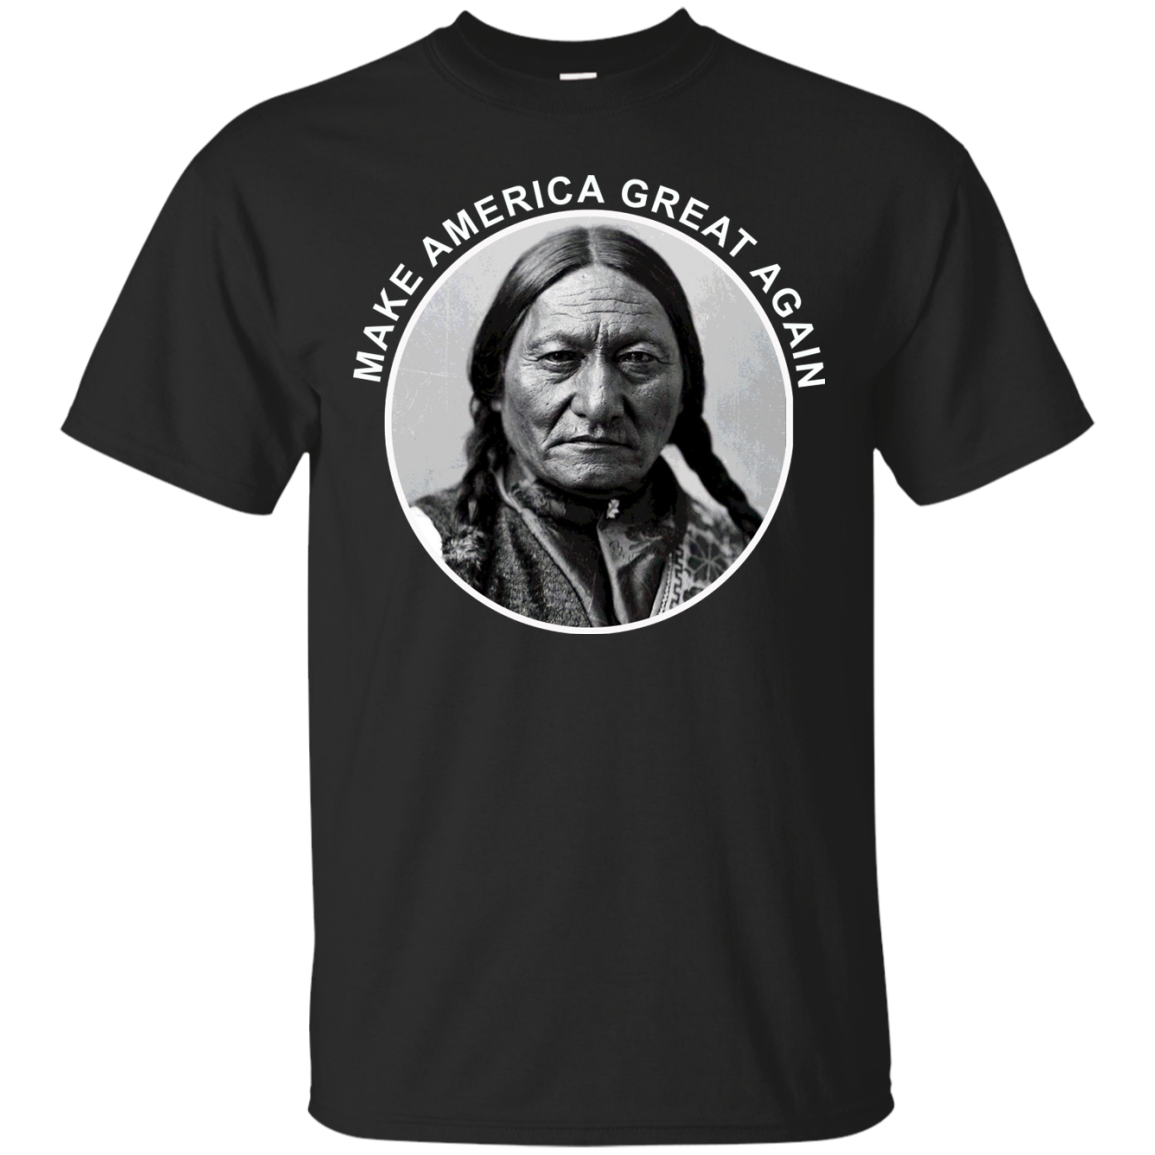 Native Indian Make America Great Again Trump Funny T Shirt - T-Shirt